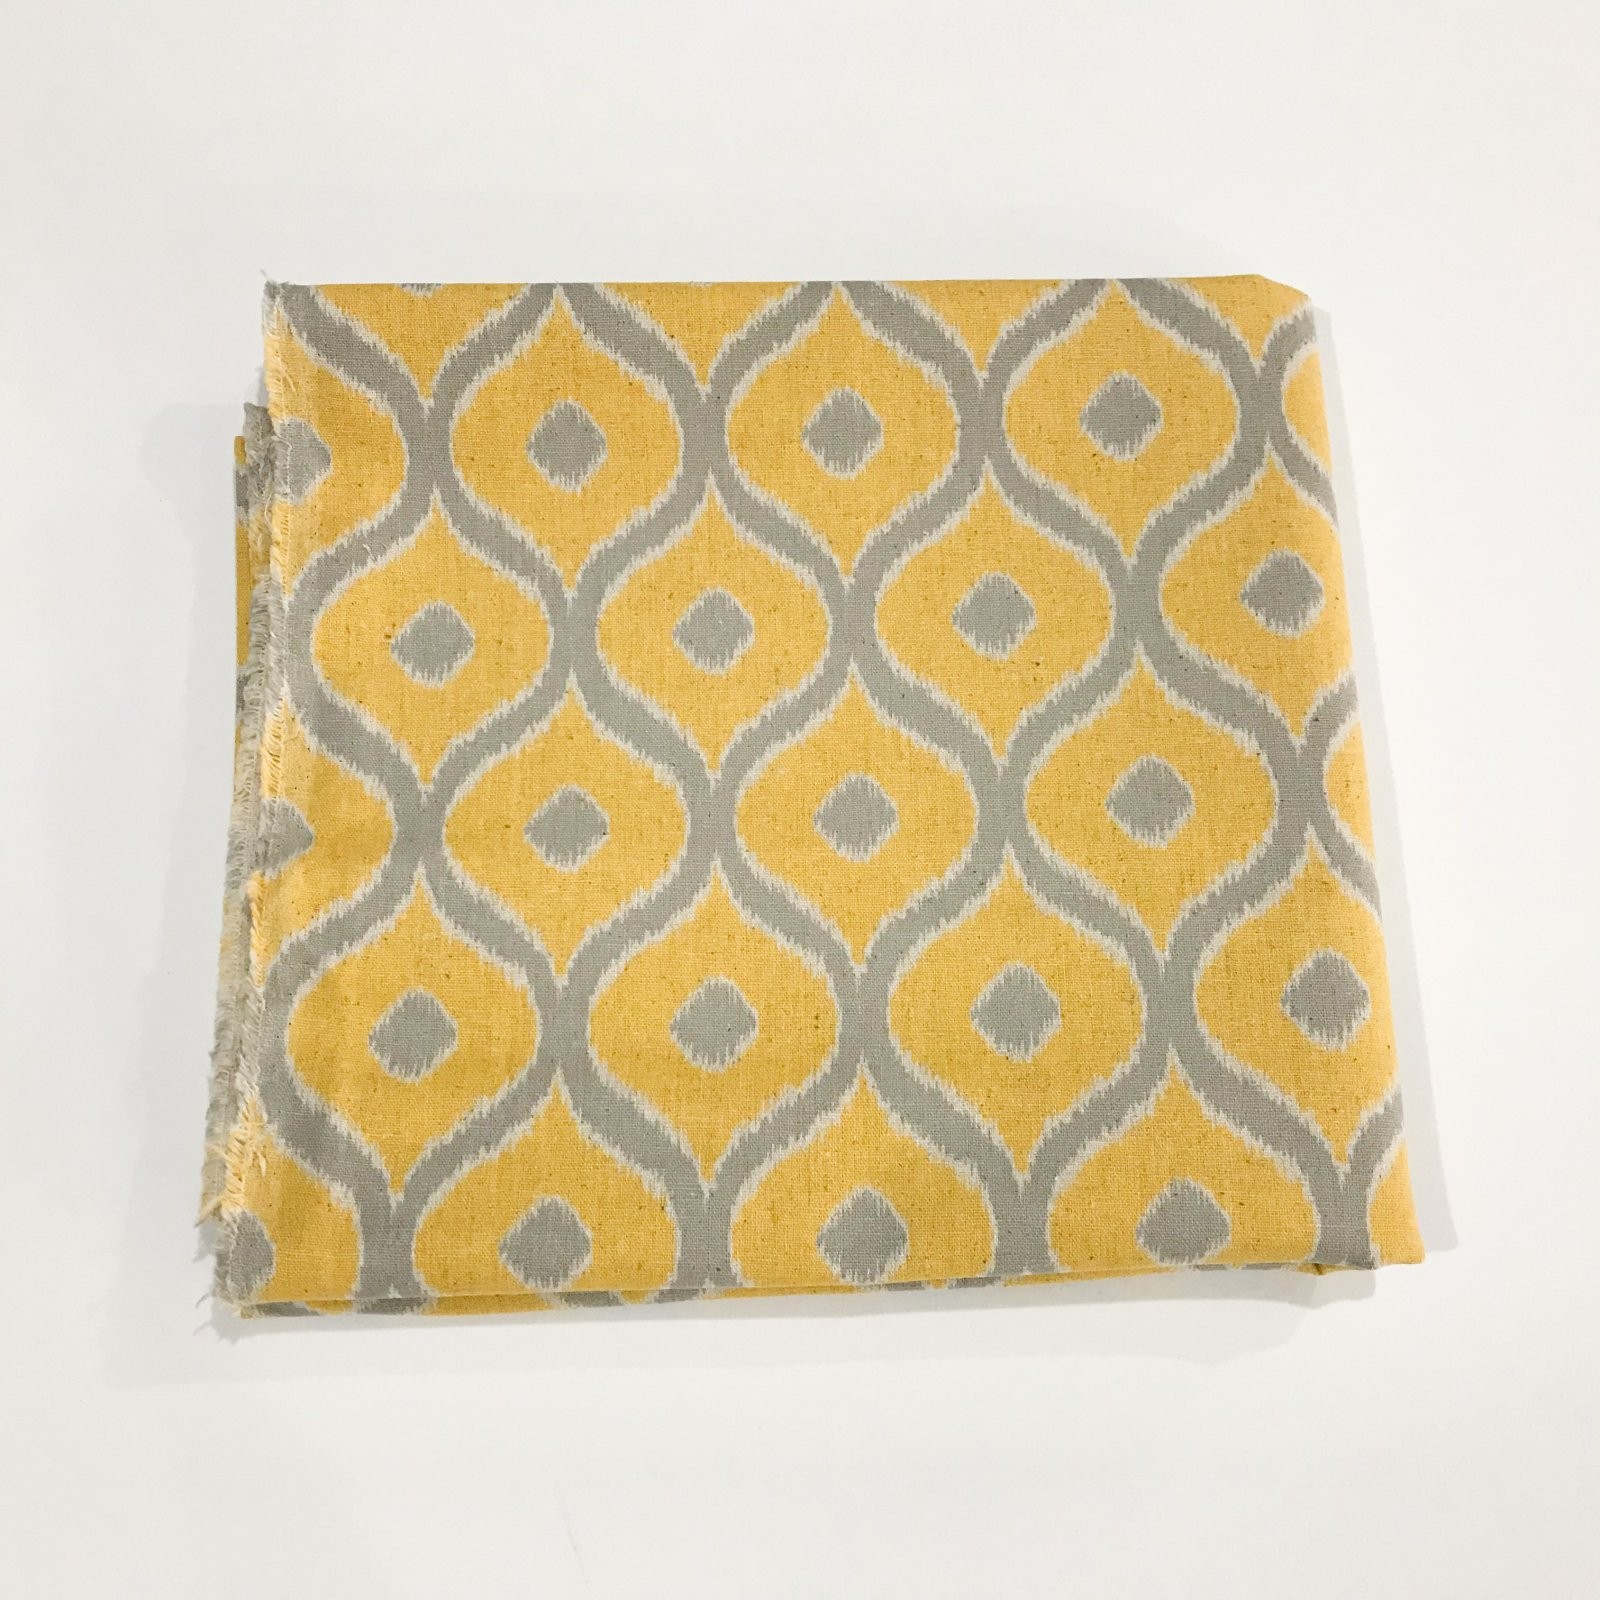 1 yard + 22 inches - Canvas - Mixologie in Banana and Steel